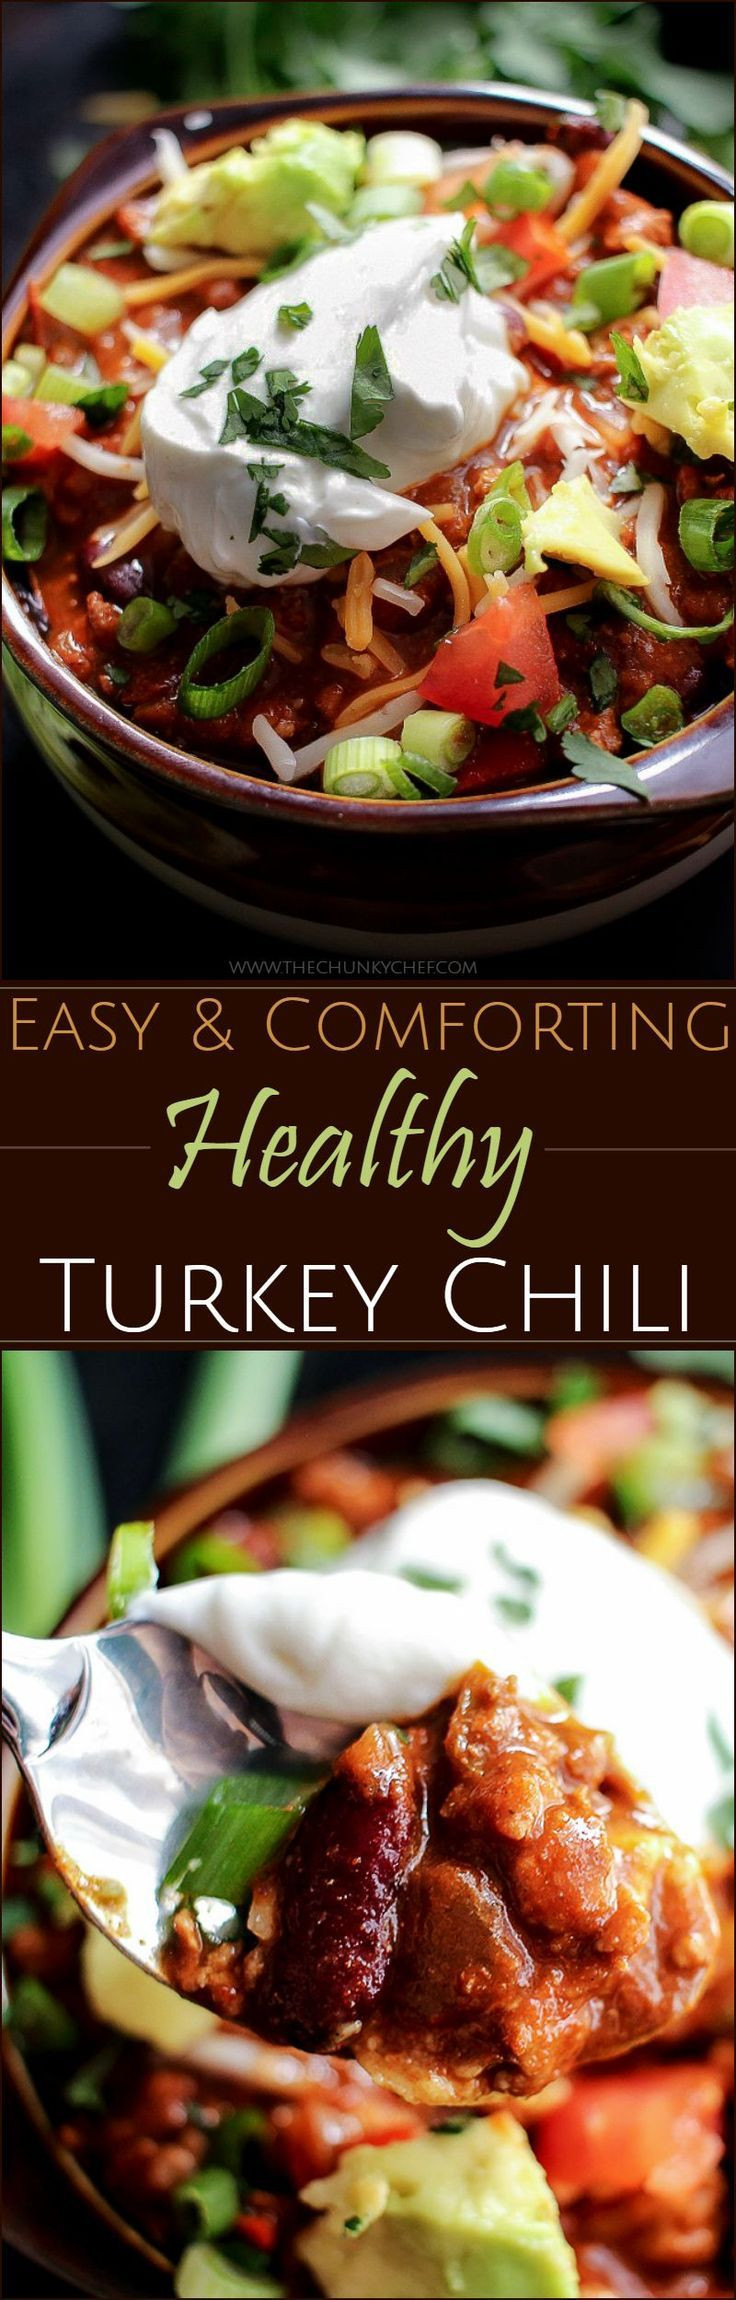 Heart Healthy Thanksgiving Recipes  Best 25 Healthy turkey chili ideas on Pinterest